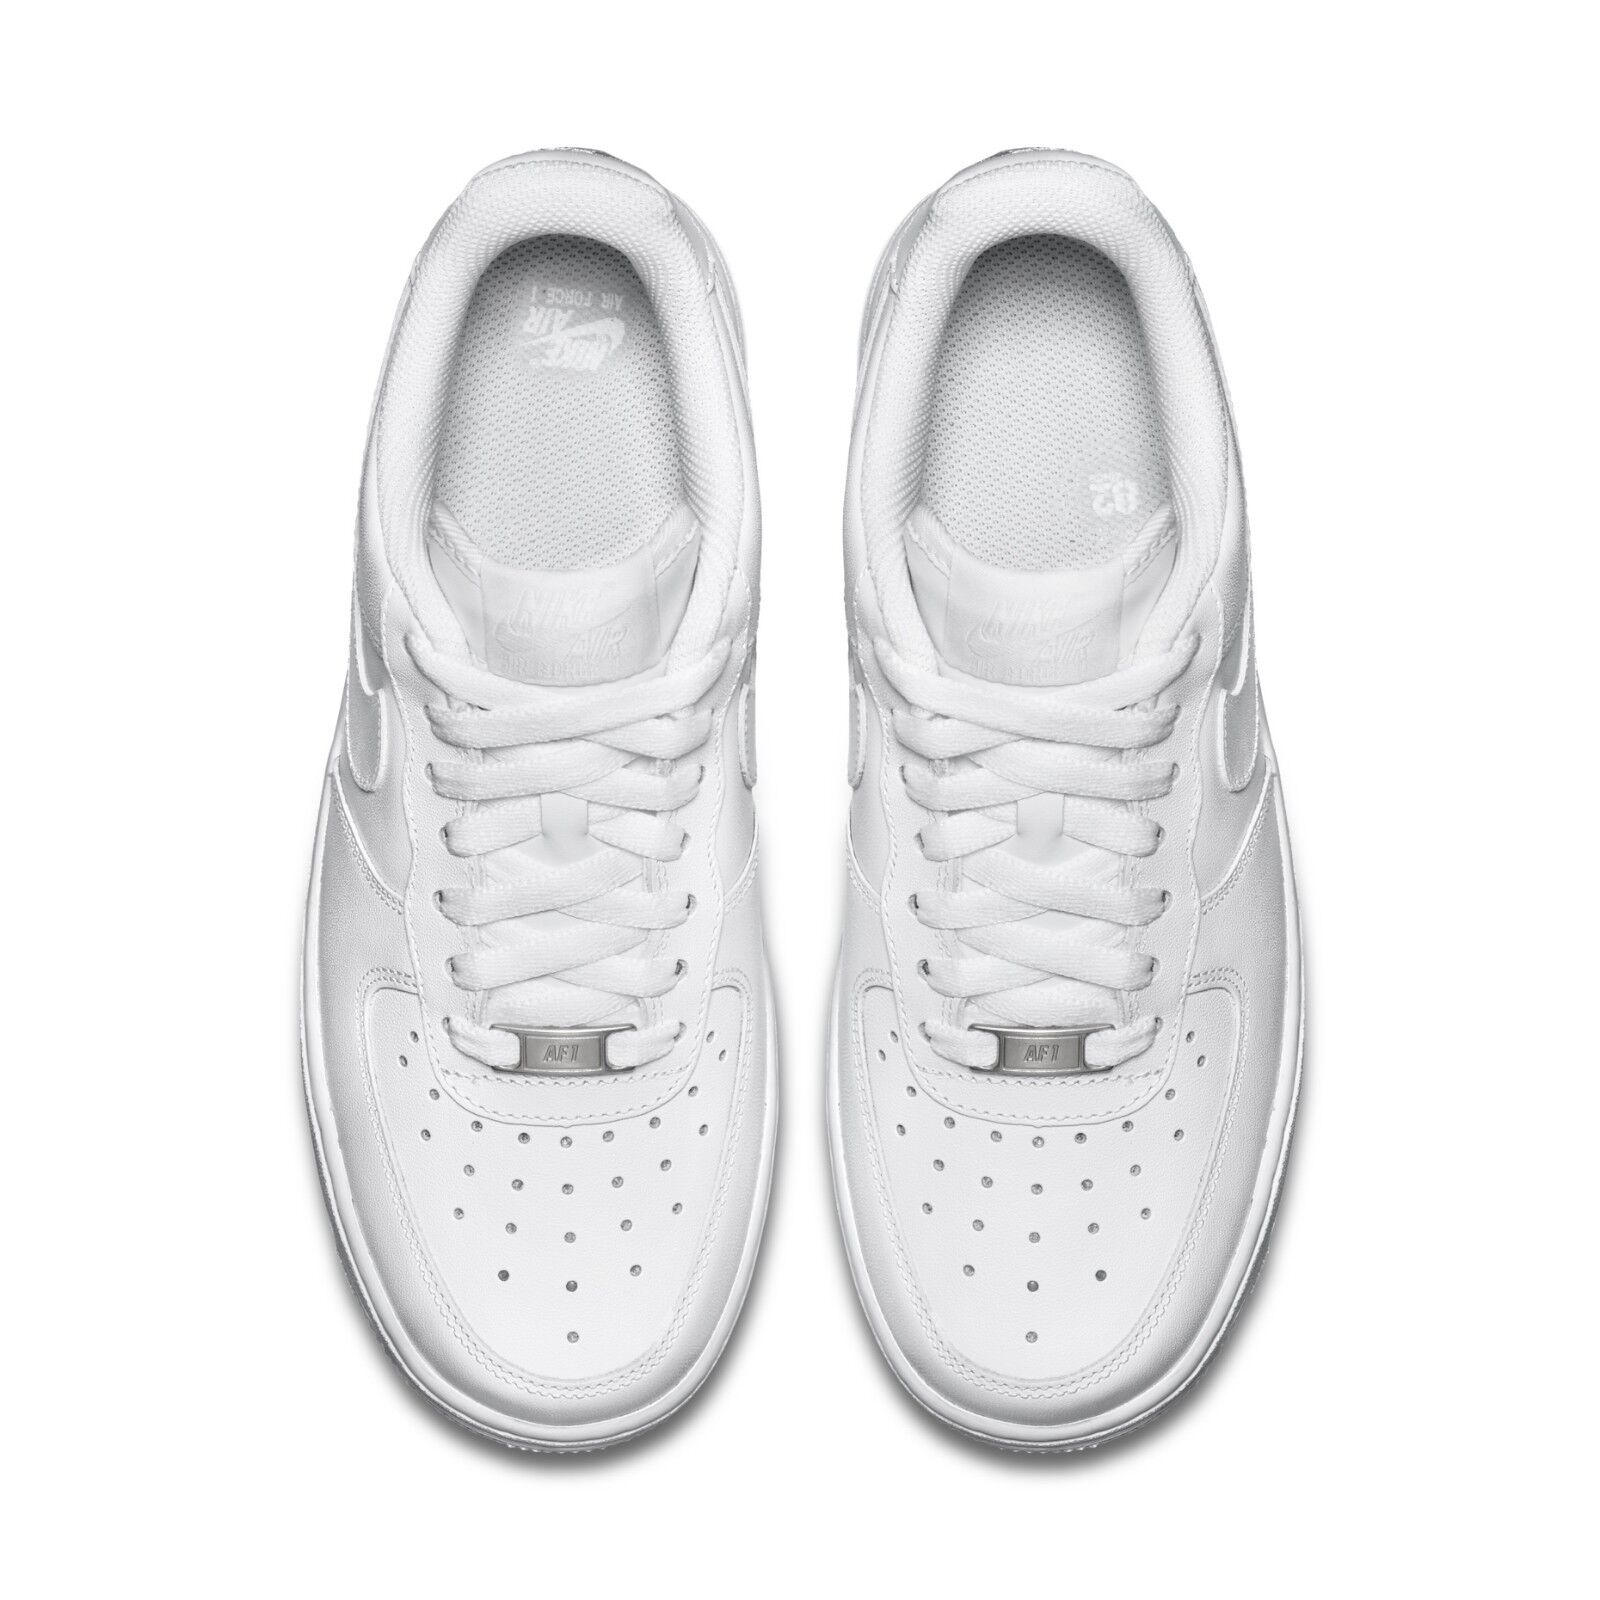 b741f12b3413b Nike Womens Wmns Air Force 1 07 Low Whiteout Classic Triple White AF1  315115-112